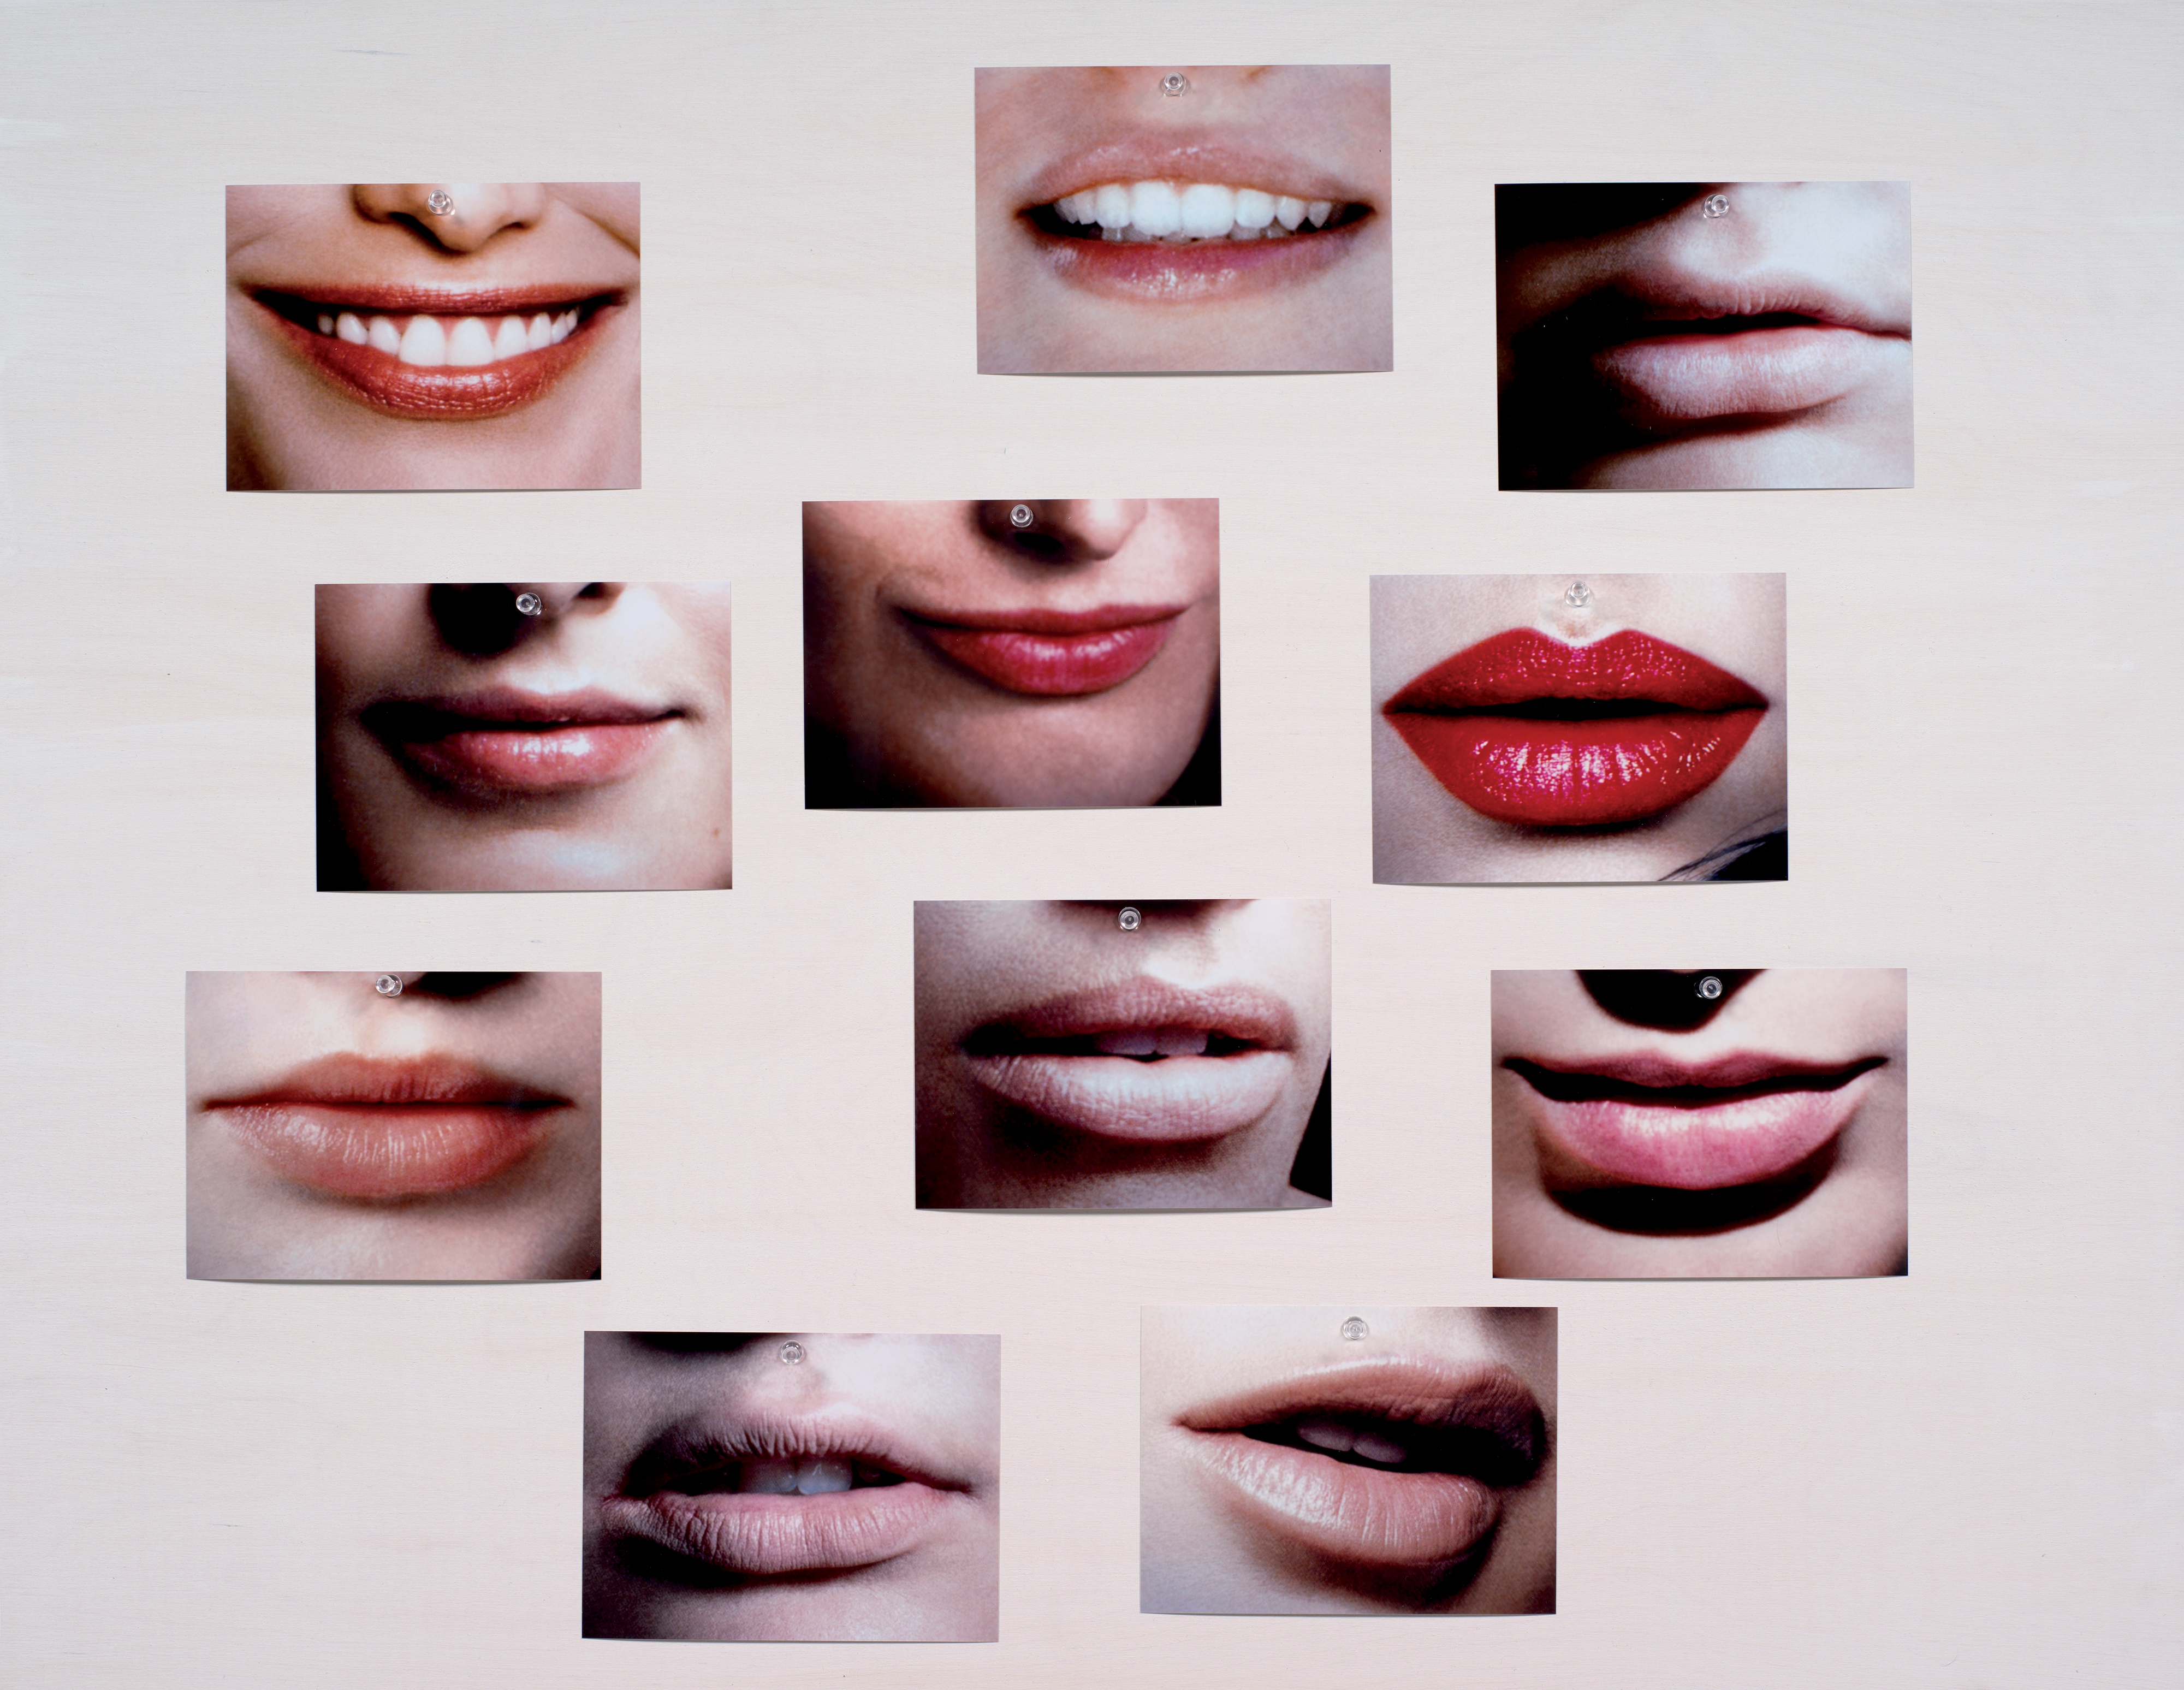 Lips 11 photographs mounted on board Courtesy of the artist and 303 Gallery, New York ADAGP, Paris 2016